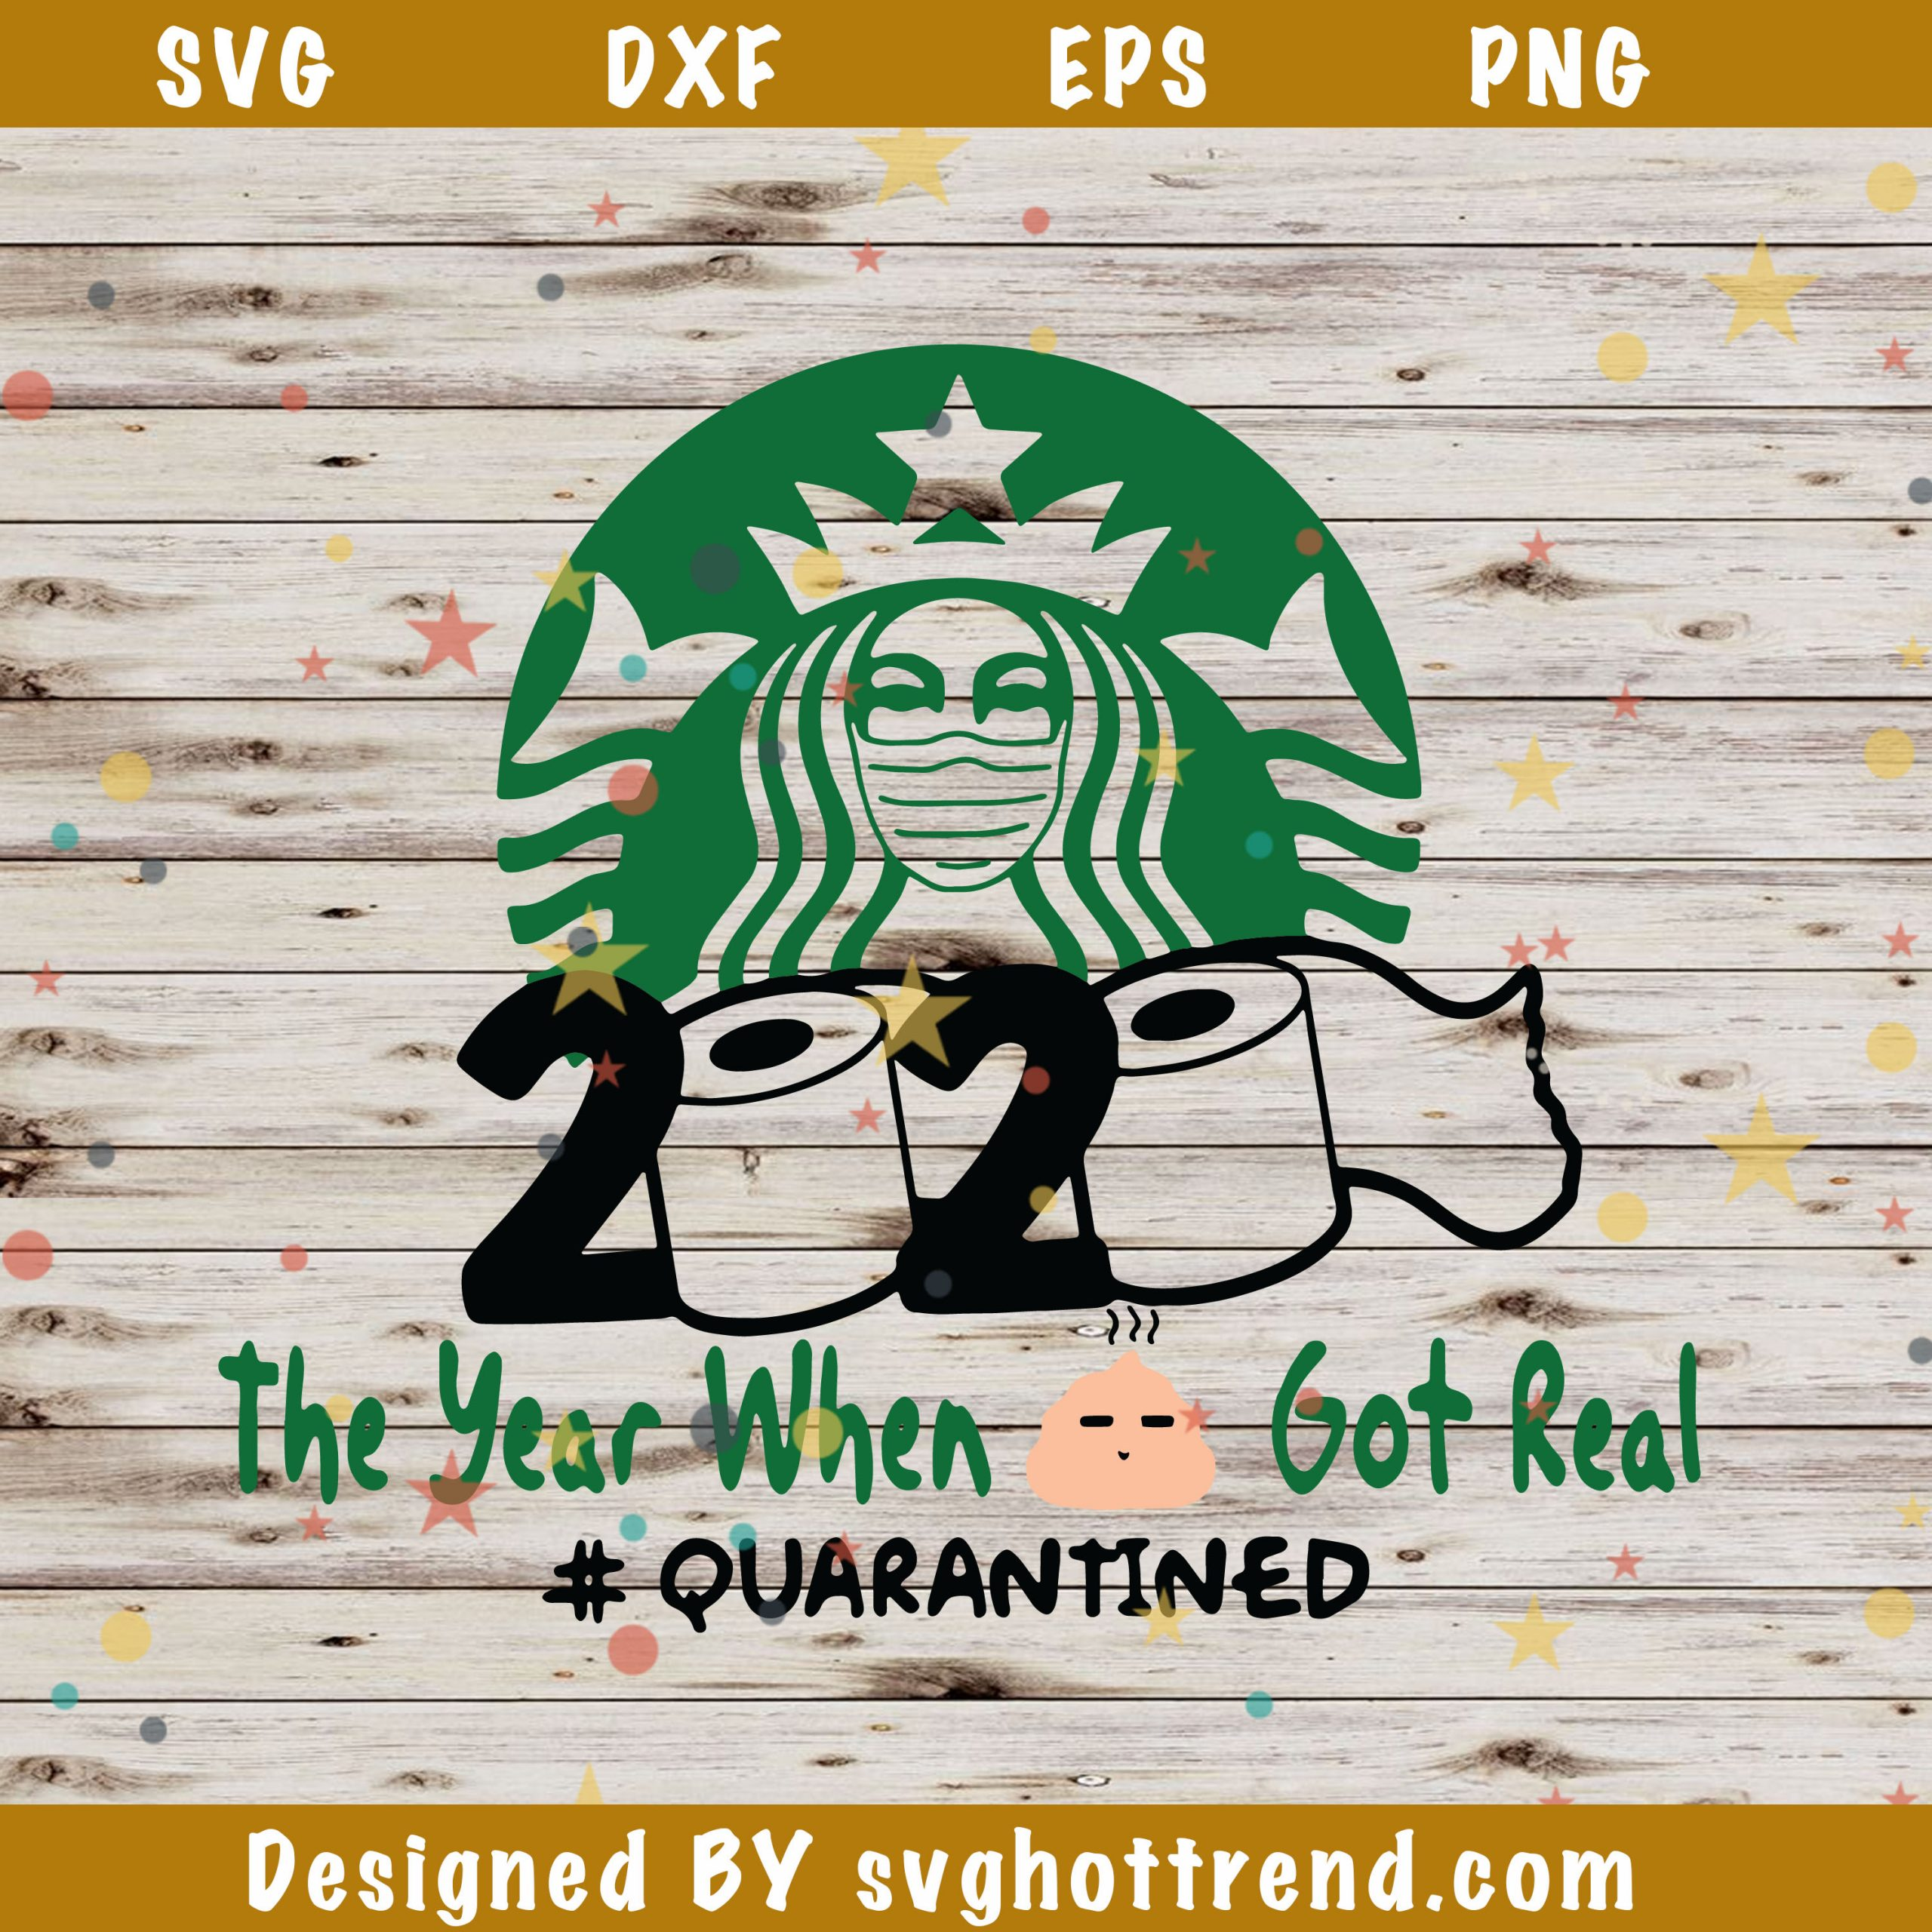 2020 The Year When Shit Got Real Quarantined Svg Starbucks Svg Quanrantine Starbucks Svg Toilet Paper Svg Svghottrend Com